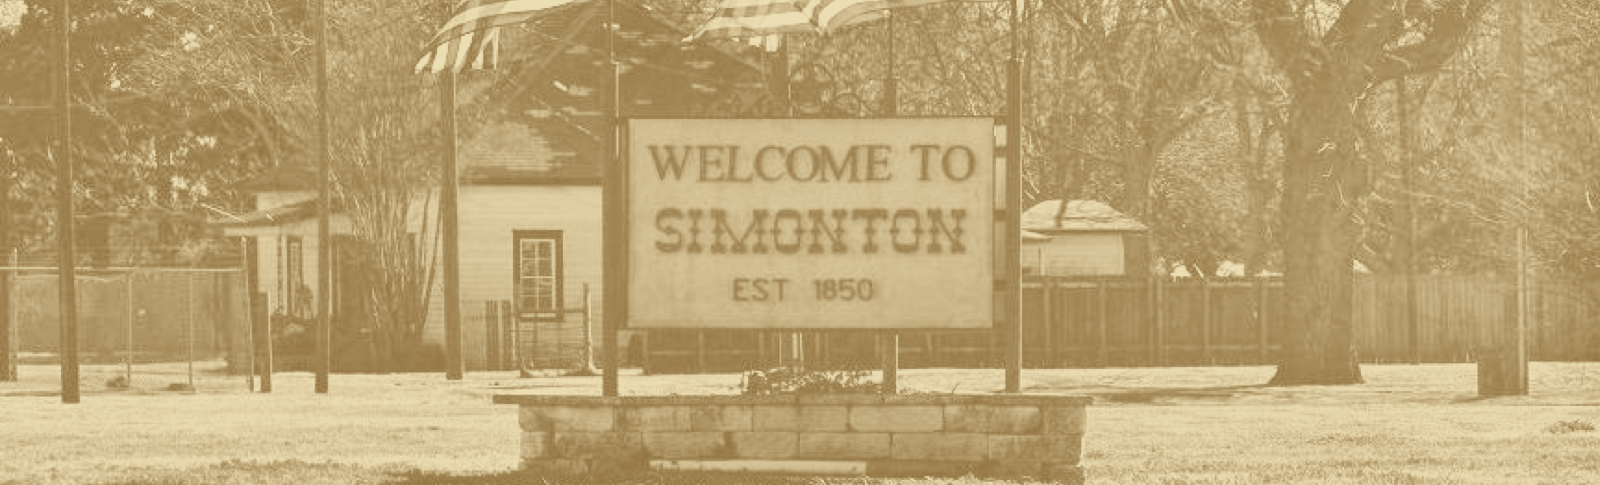 Welcome to Simonton sign